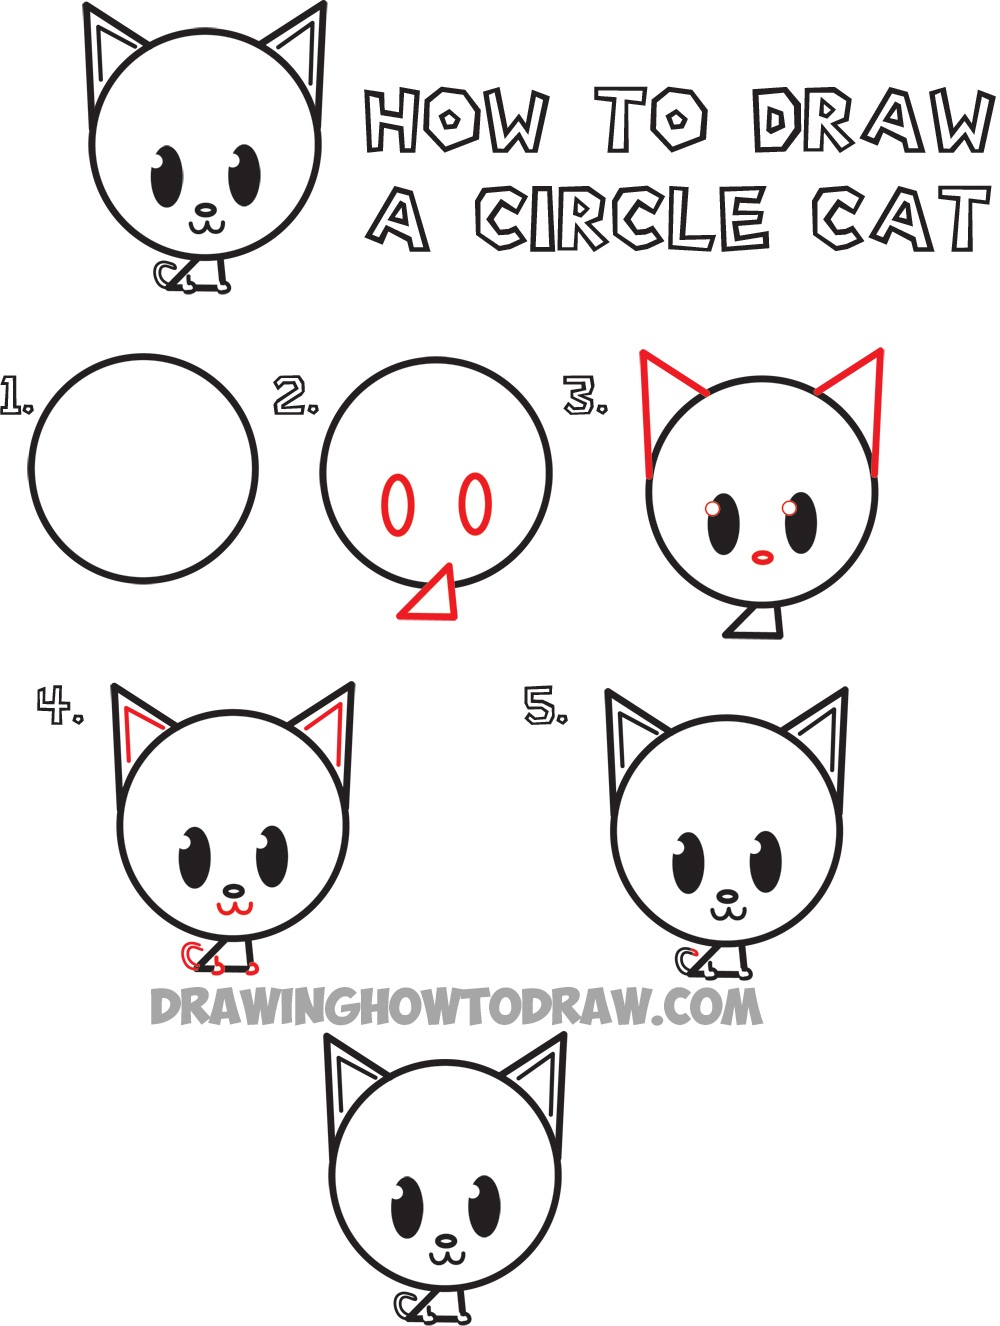 big guide to drawing cute circle animals easy step by step drawing tutorial for kids how to. Black Bedroom Furniture Sets. Home Design Ideas